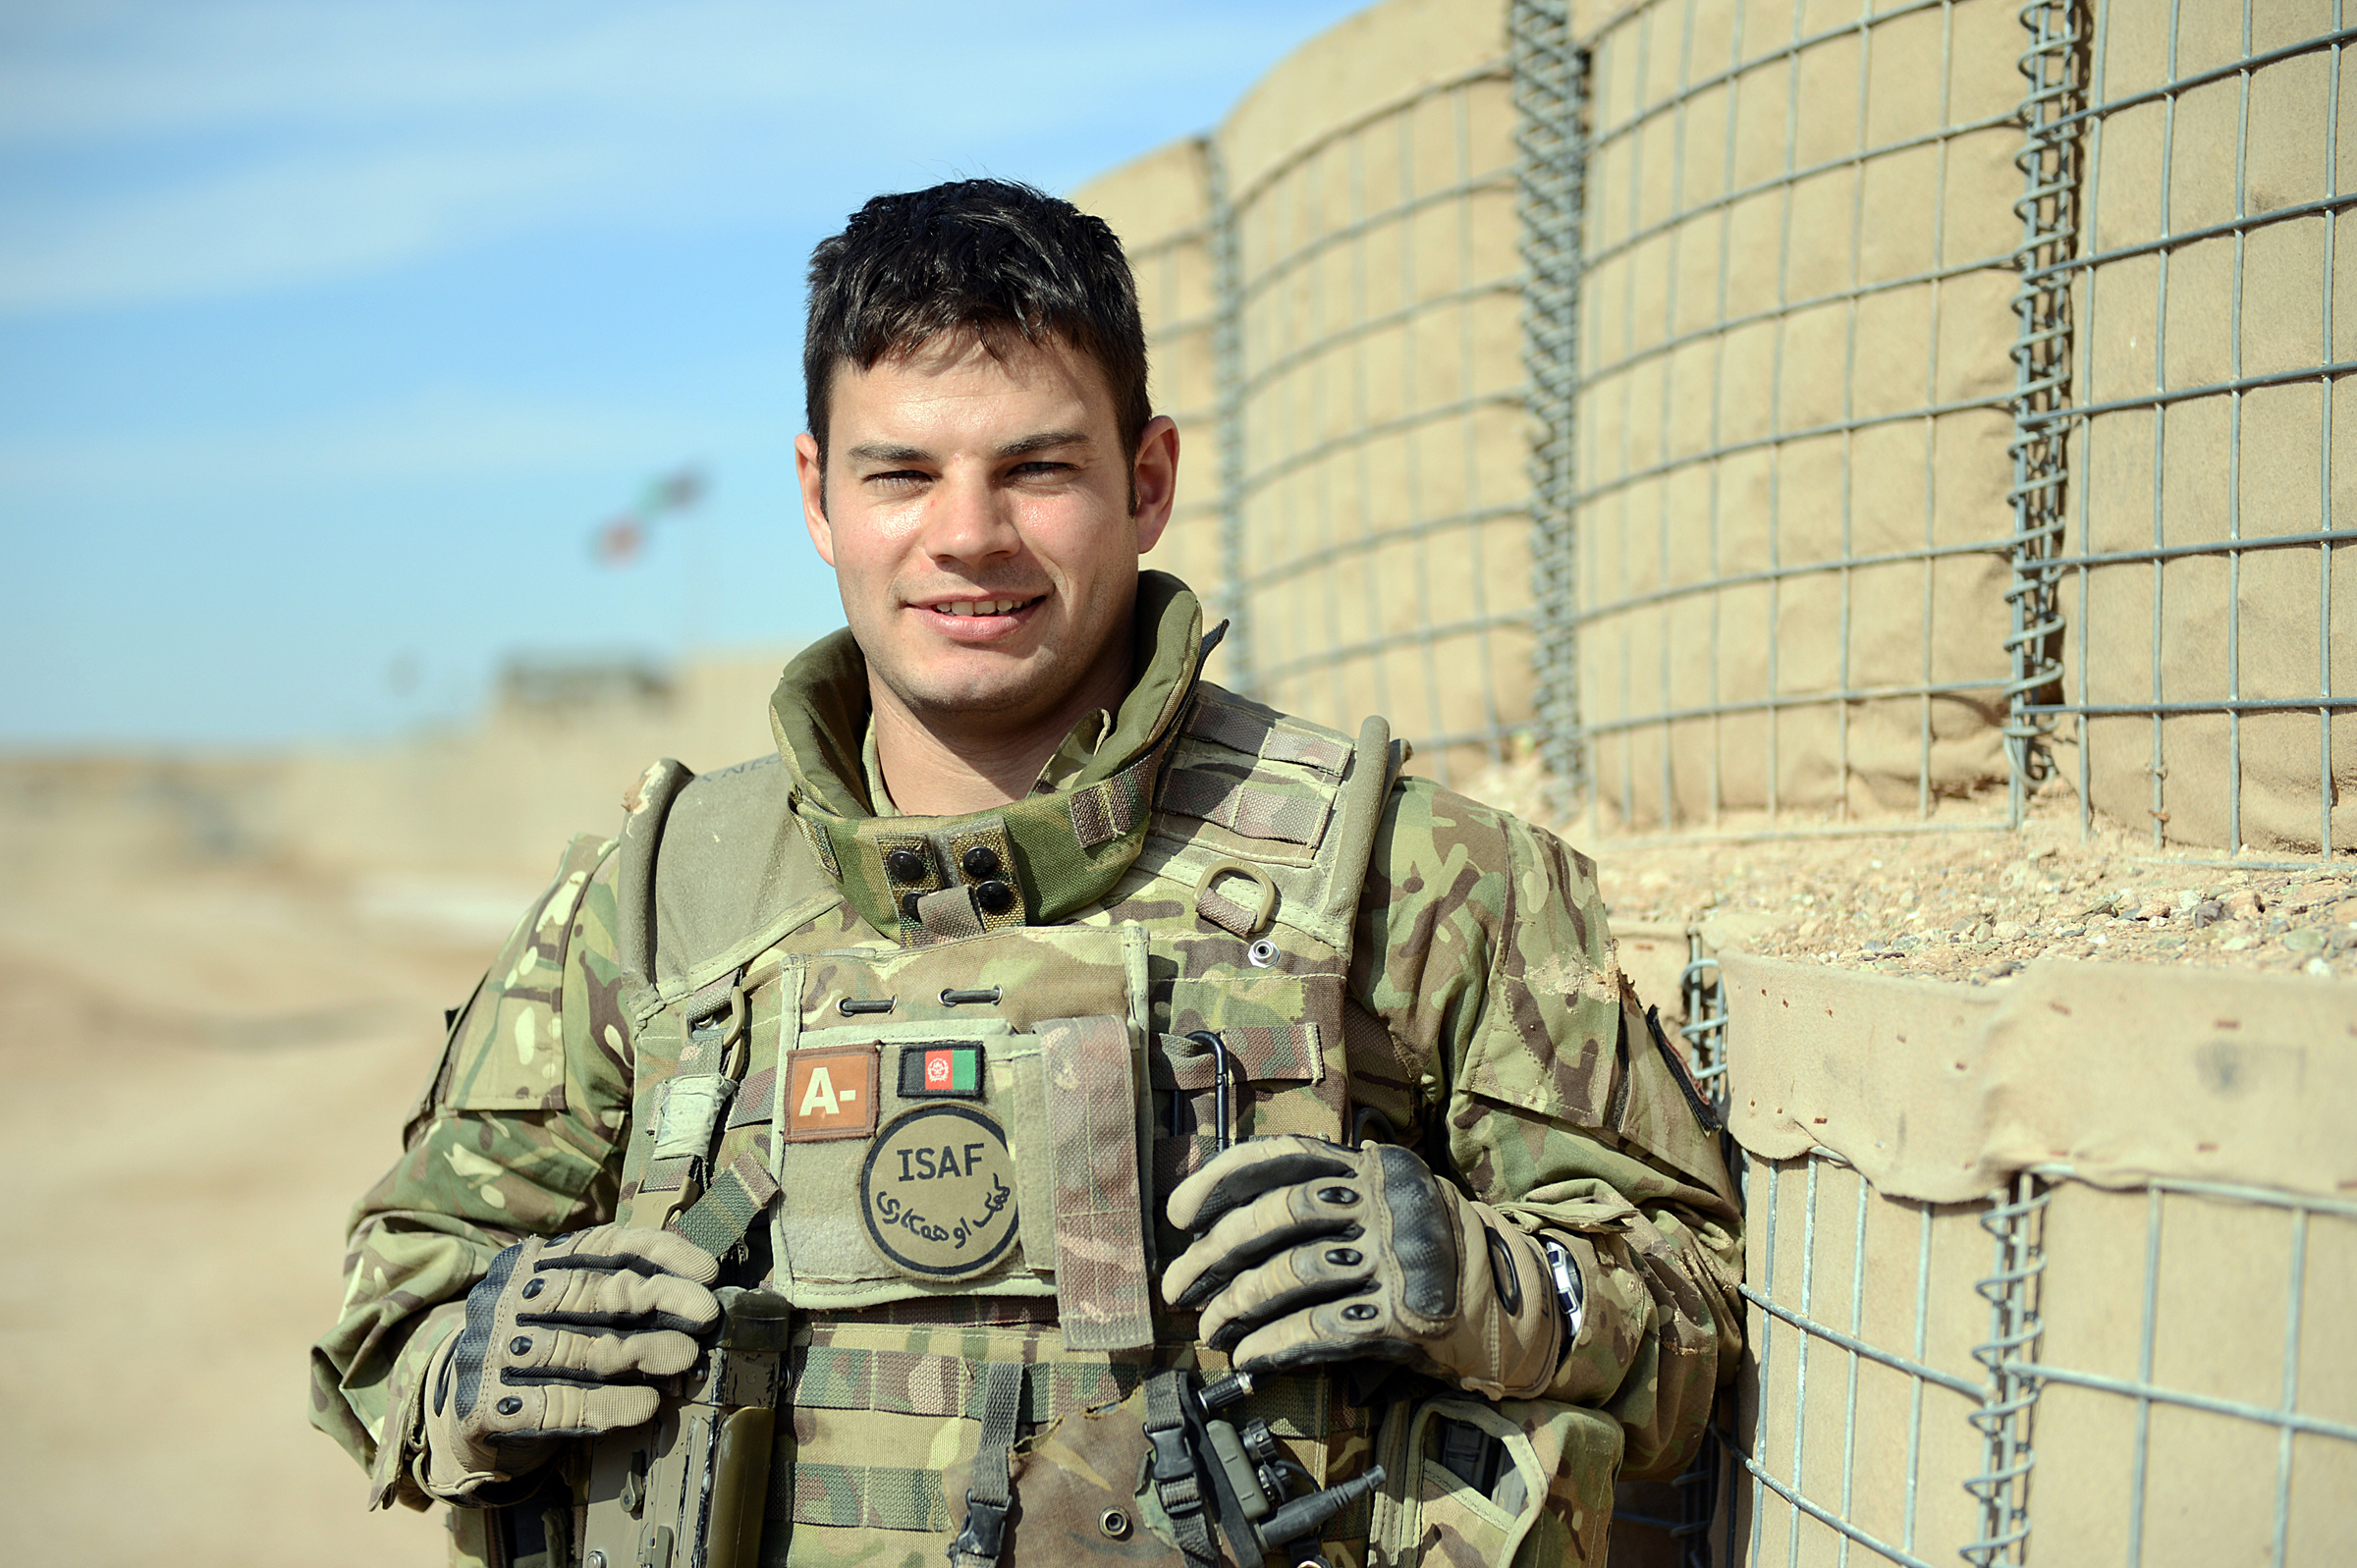 Corporal James Letts in Afghanistan